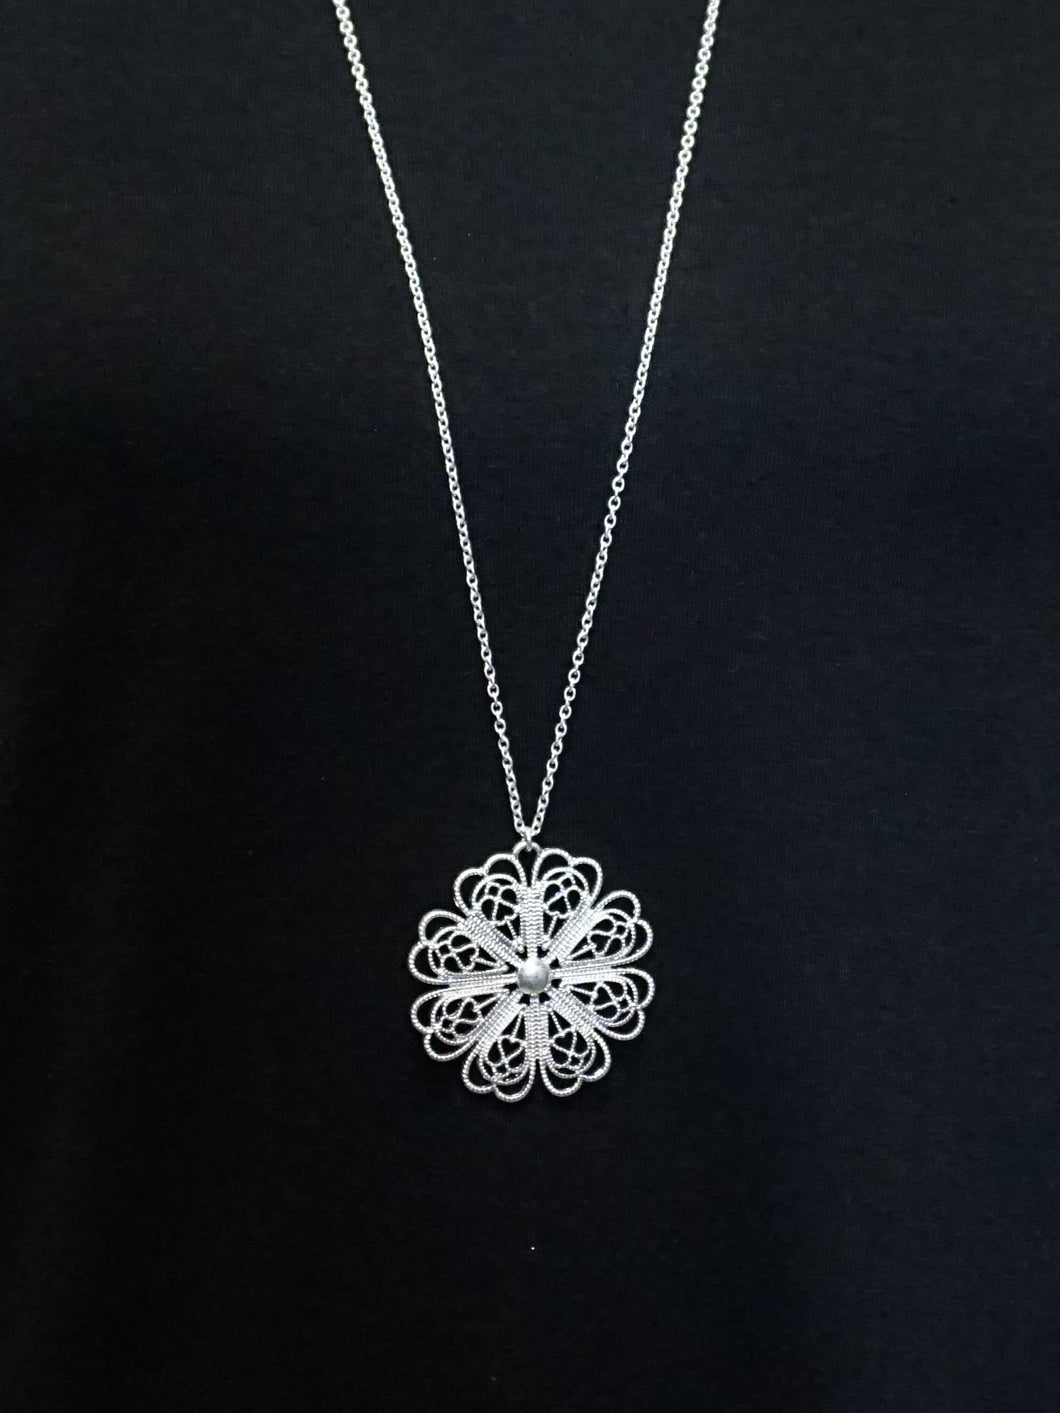 Jewelry Venice - Long Chain Necklace - Silver - The Ruby Lotus Boutique